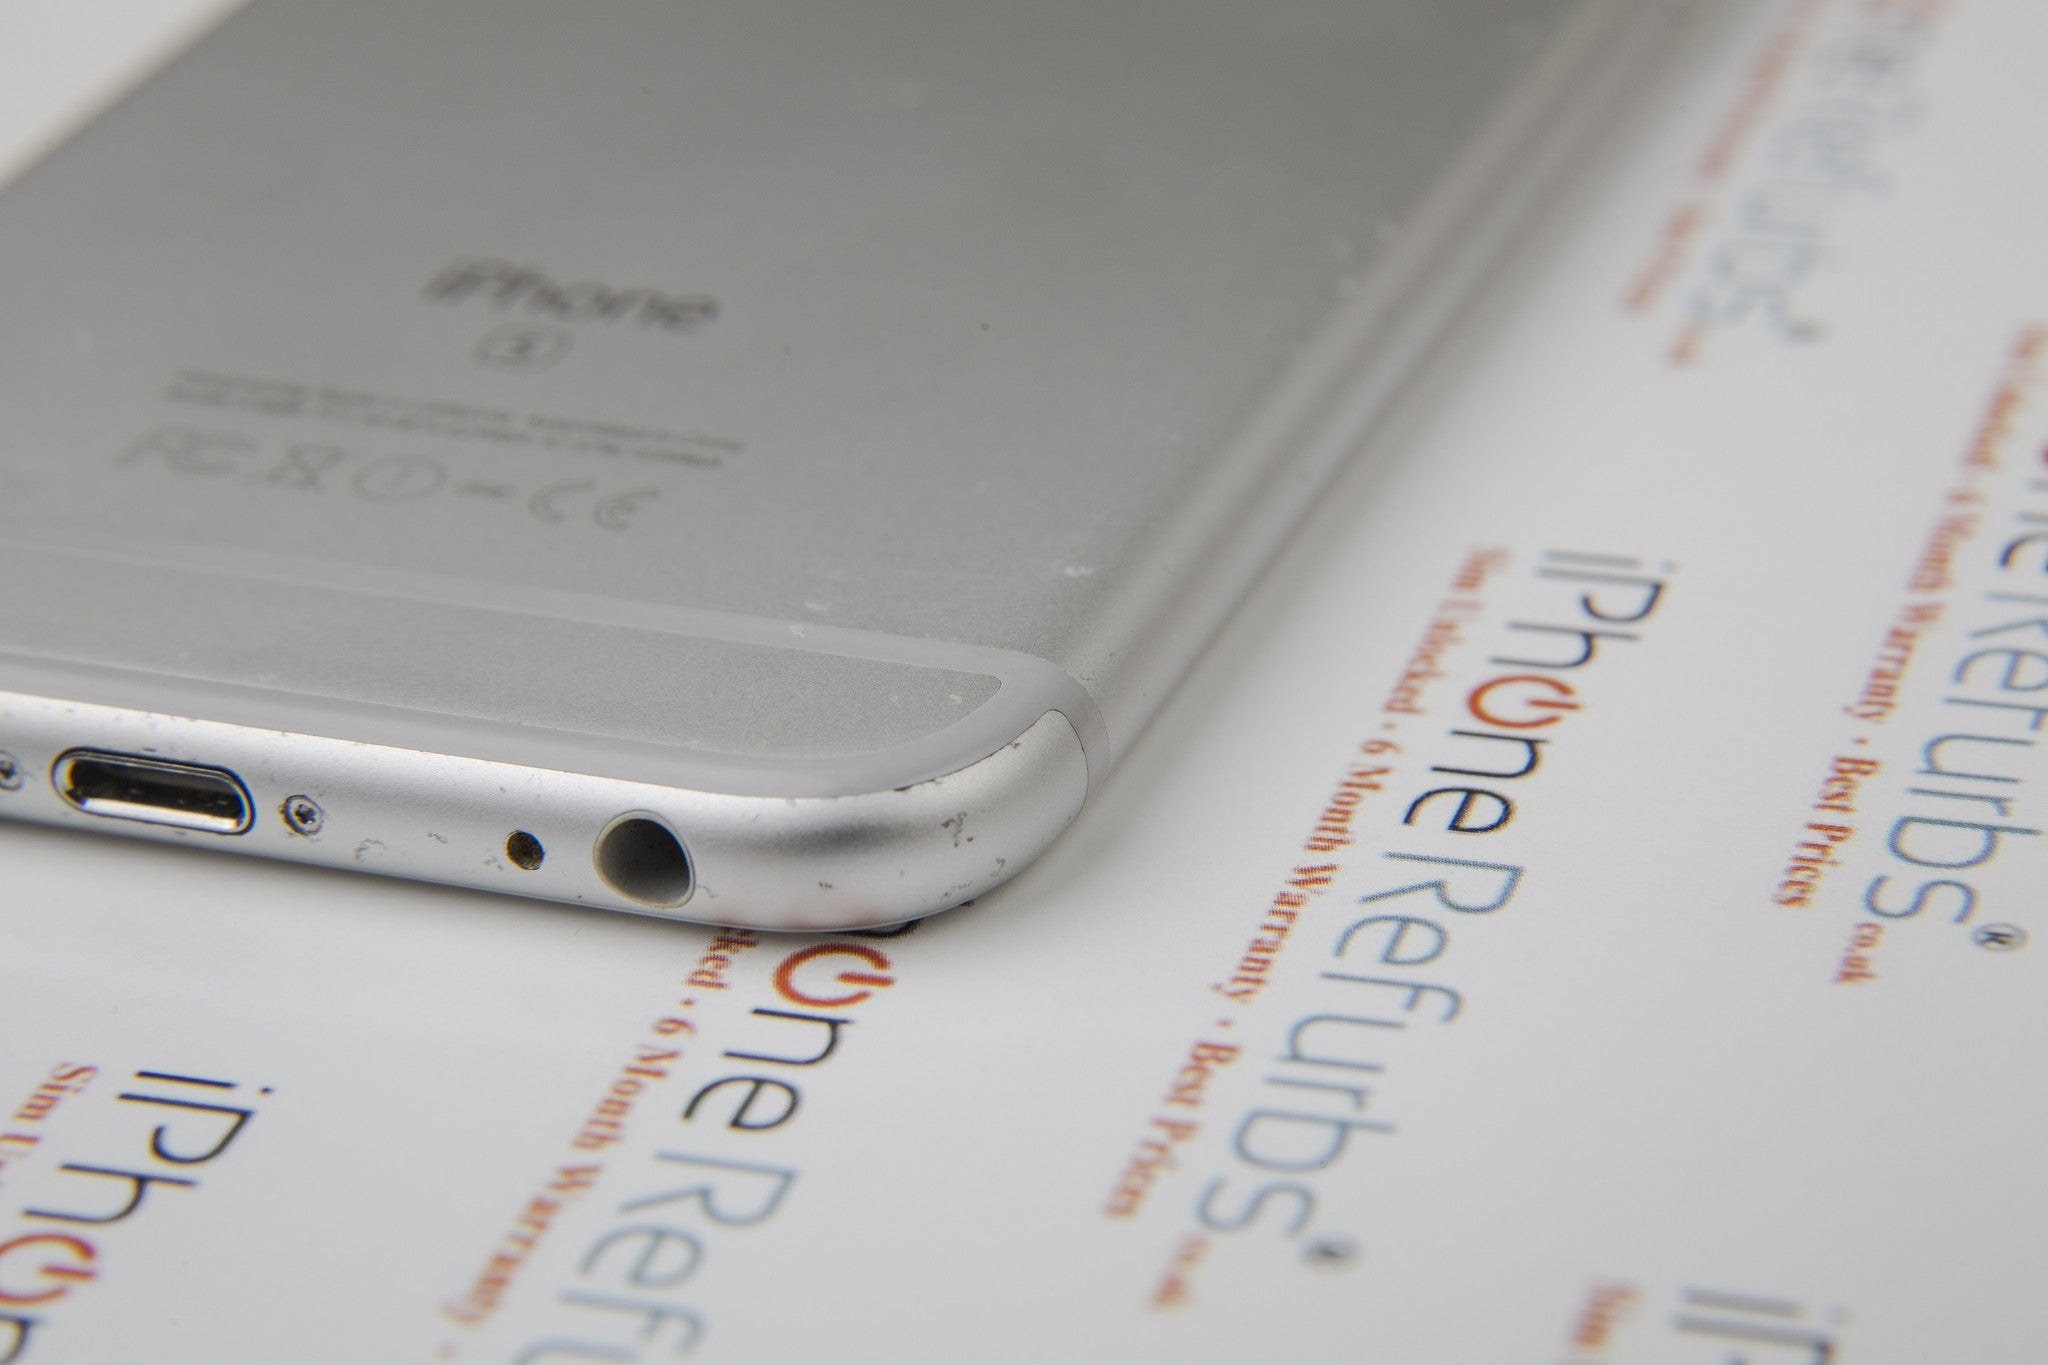 Refurbished iPhone with scratches - very good